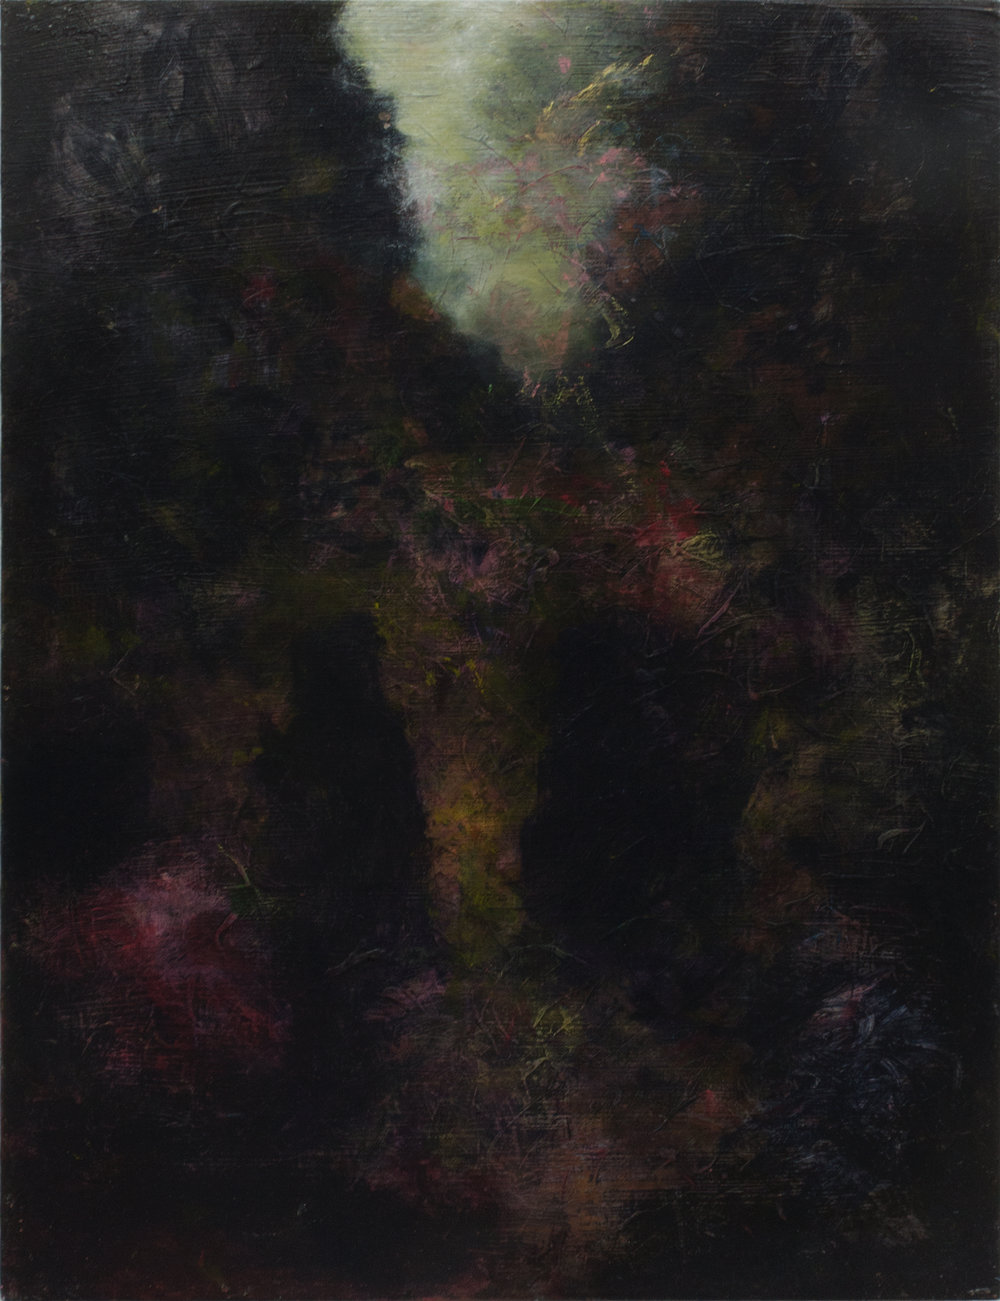 GLADE , Oil and Acrylic on board, 65×50 cm, Martin Ålund 2018